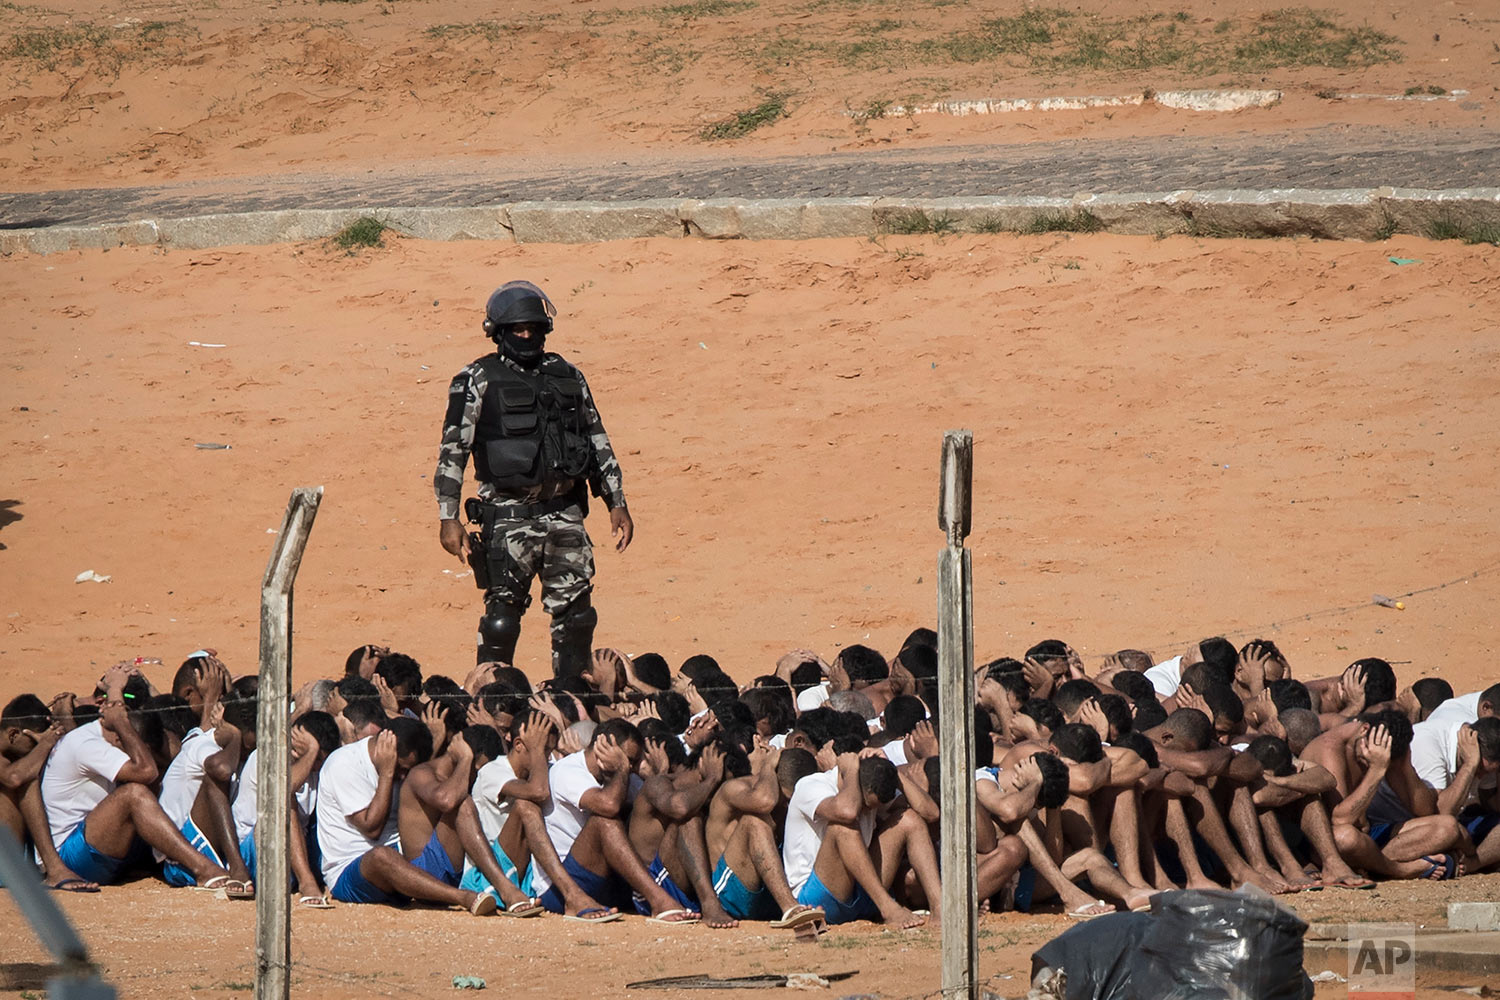 A military police officer conducts a head count of inmates at the Alcacuz prison in Nisia Floresta, Brazil, Tuesday, Jan. 24, 2017. Military police entered the prison in northeastern Brazil where a temporary wall separating two rival gangs was being built, after a week of chaos and fighting between rival gangs that left dozens of inmates dead. (AP Photo/Felipe Dana)